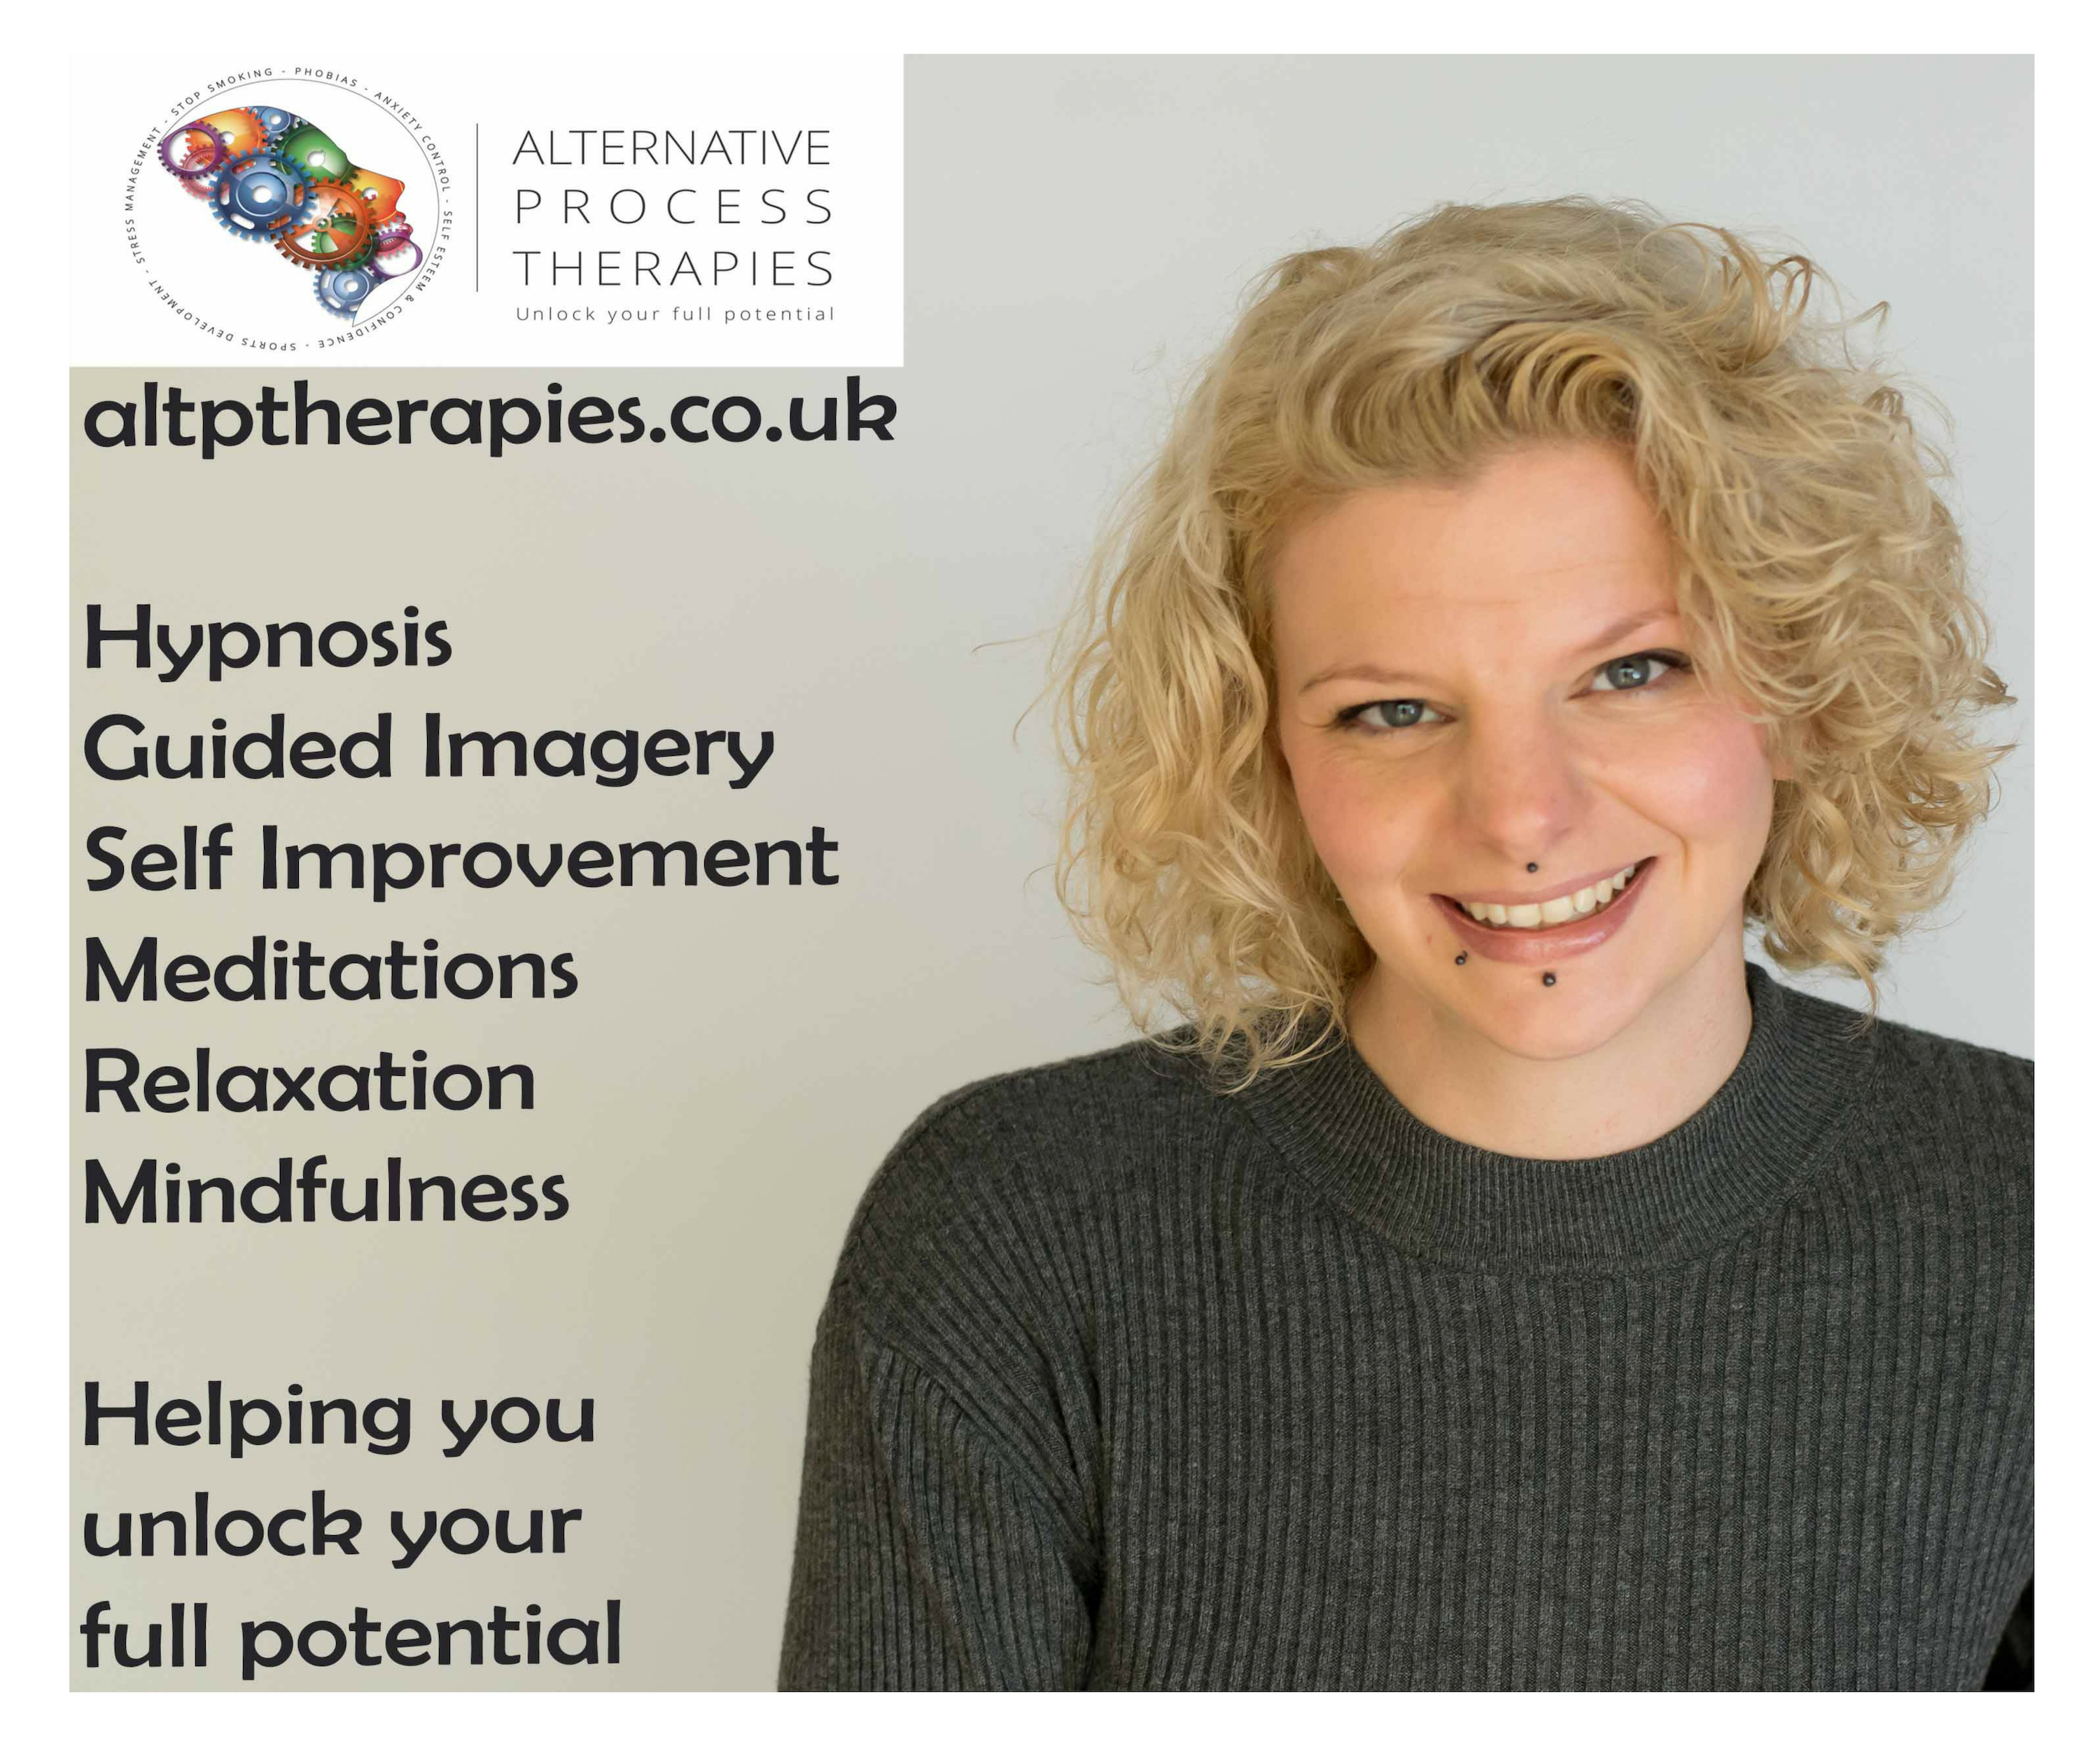 Artwork for IBS and how hypnotherapy can help